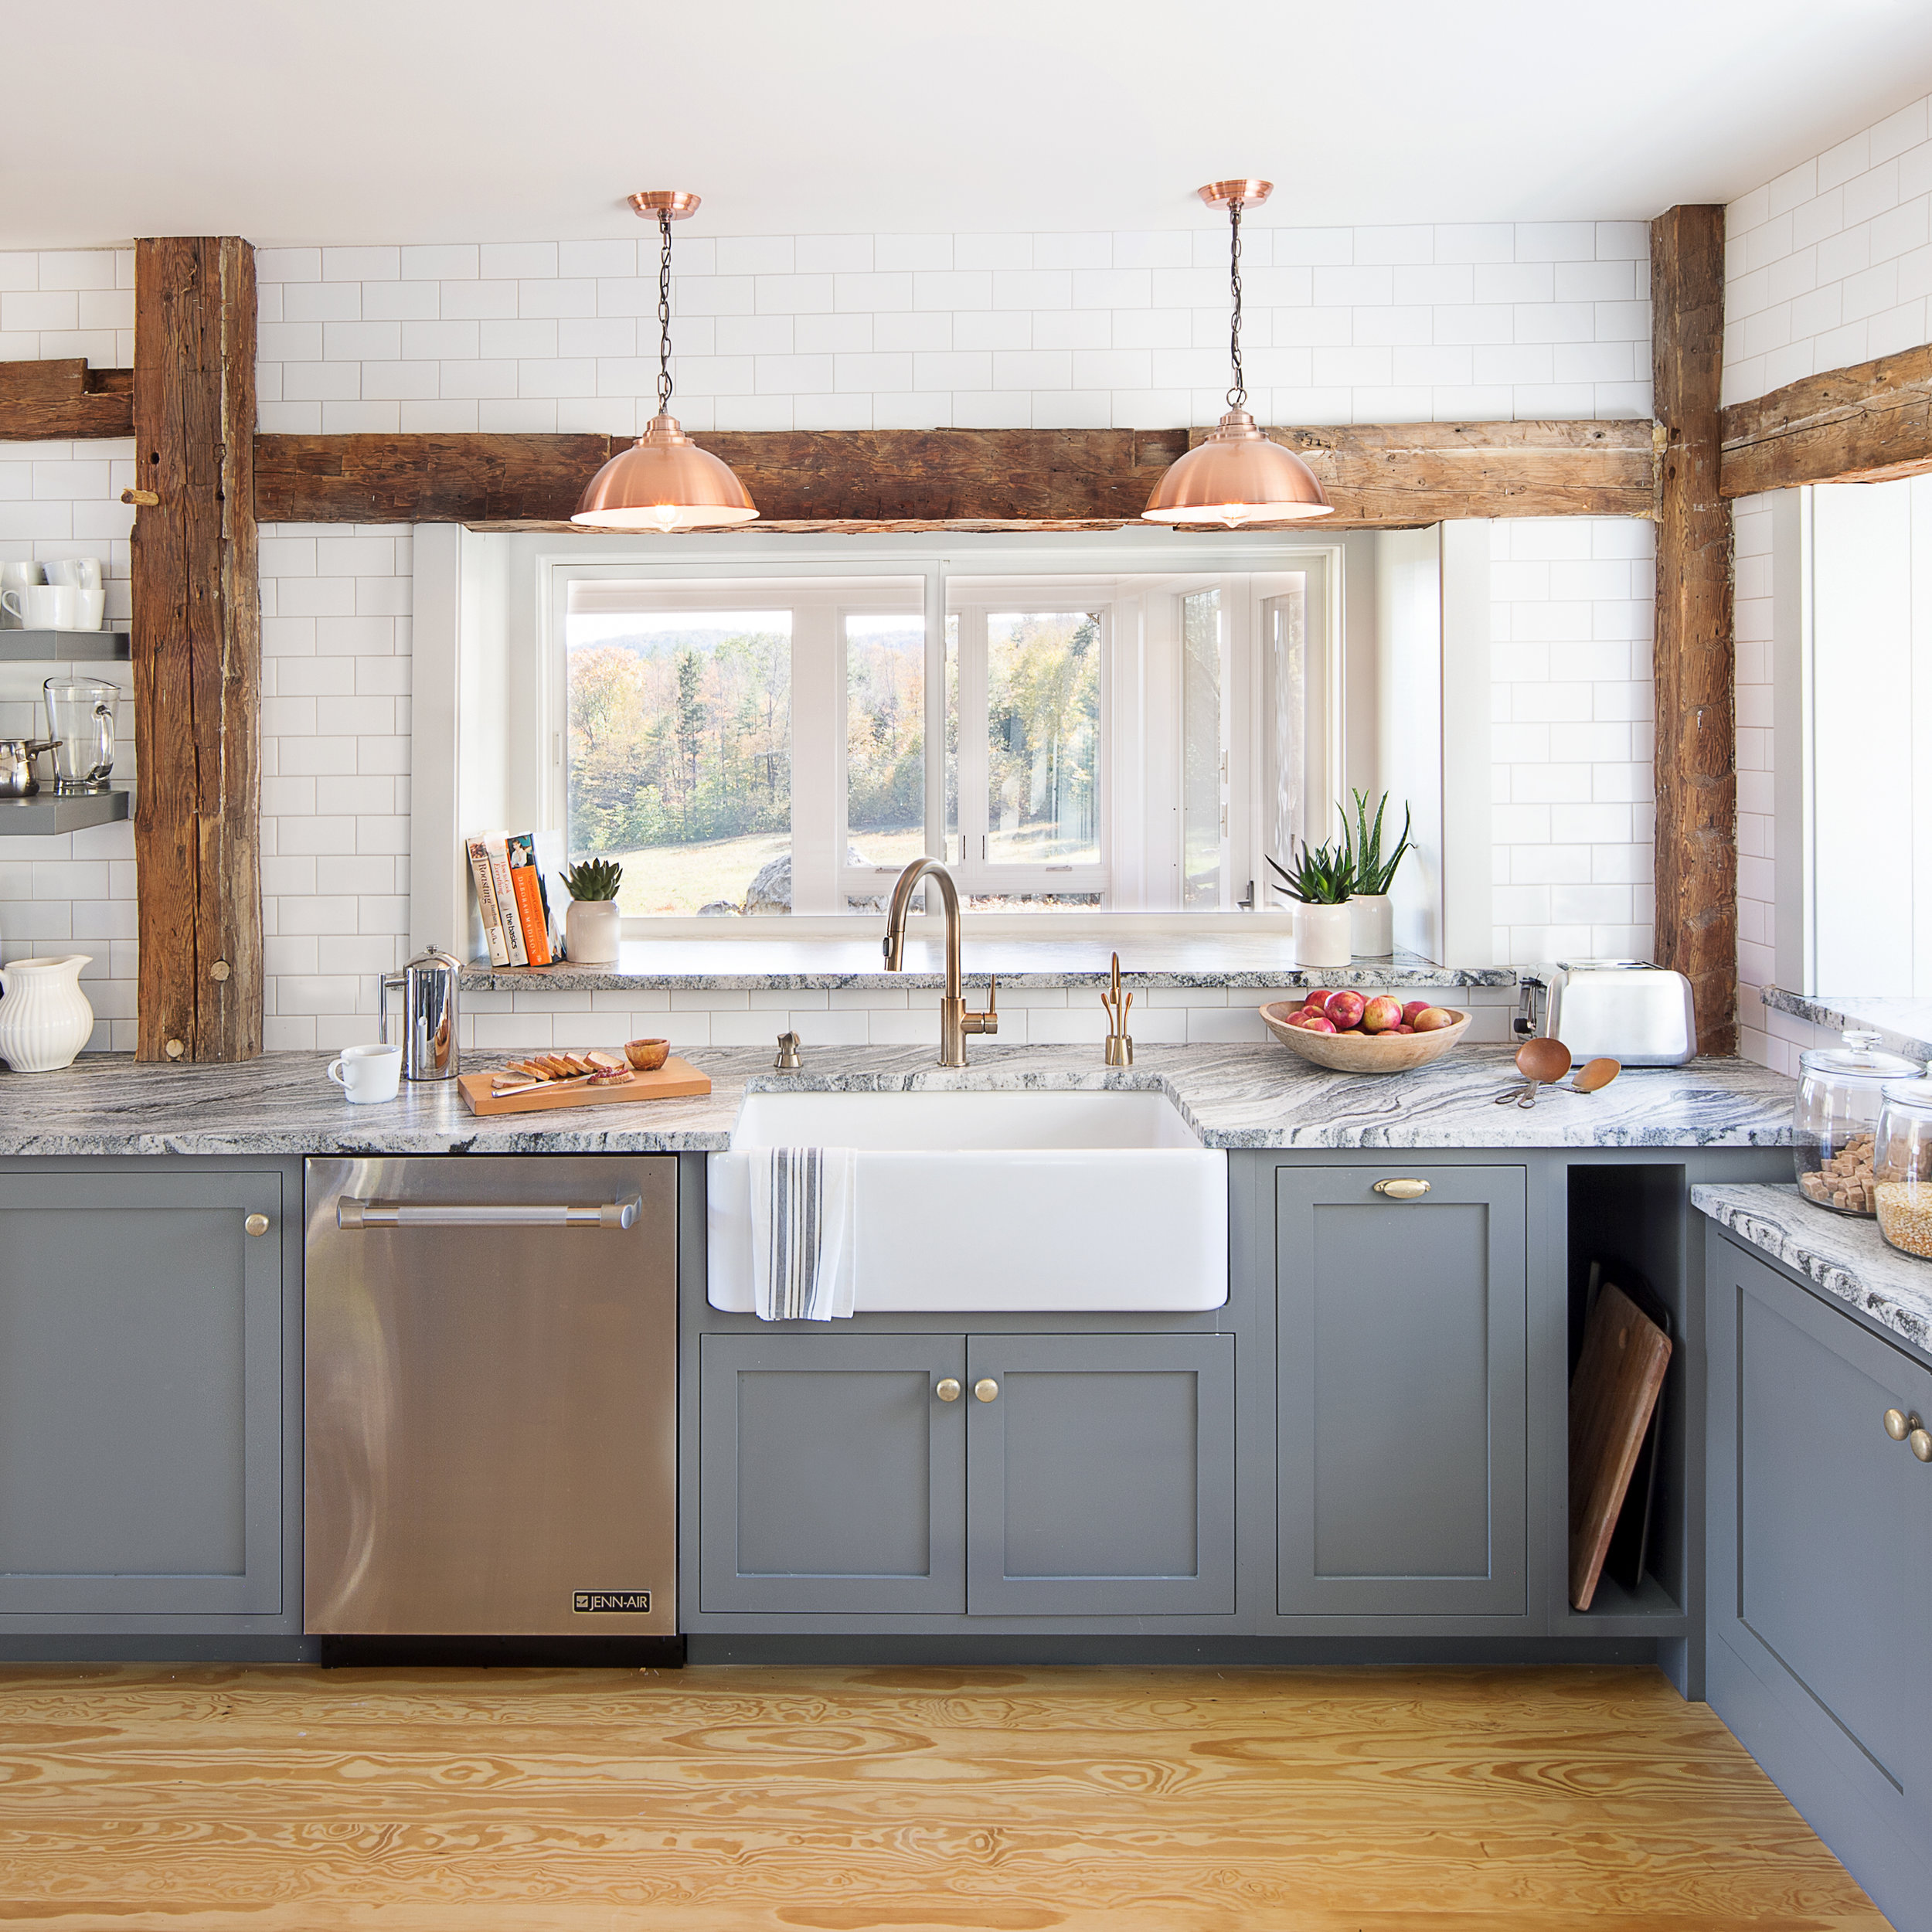 Farmhouse Kitchen CLose Up Styling Design & Styling by Joanne Palmisano.jpg